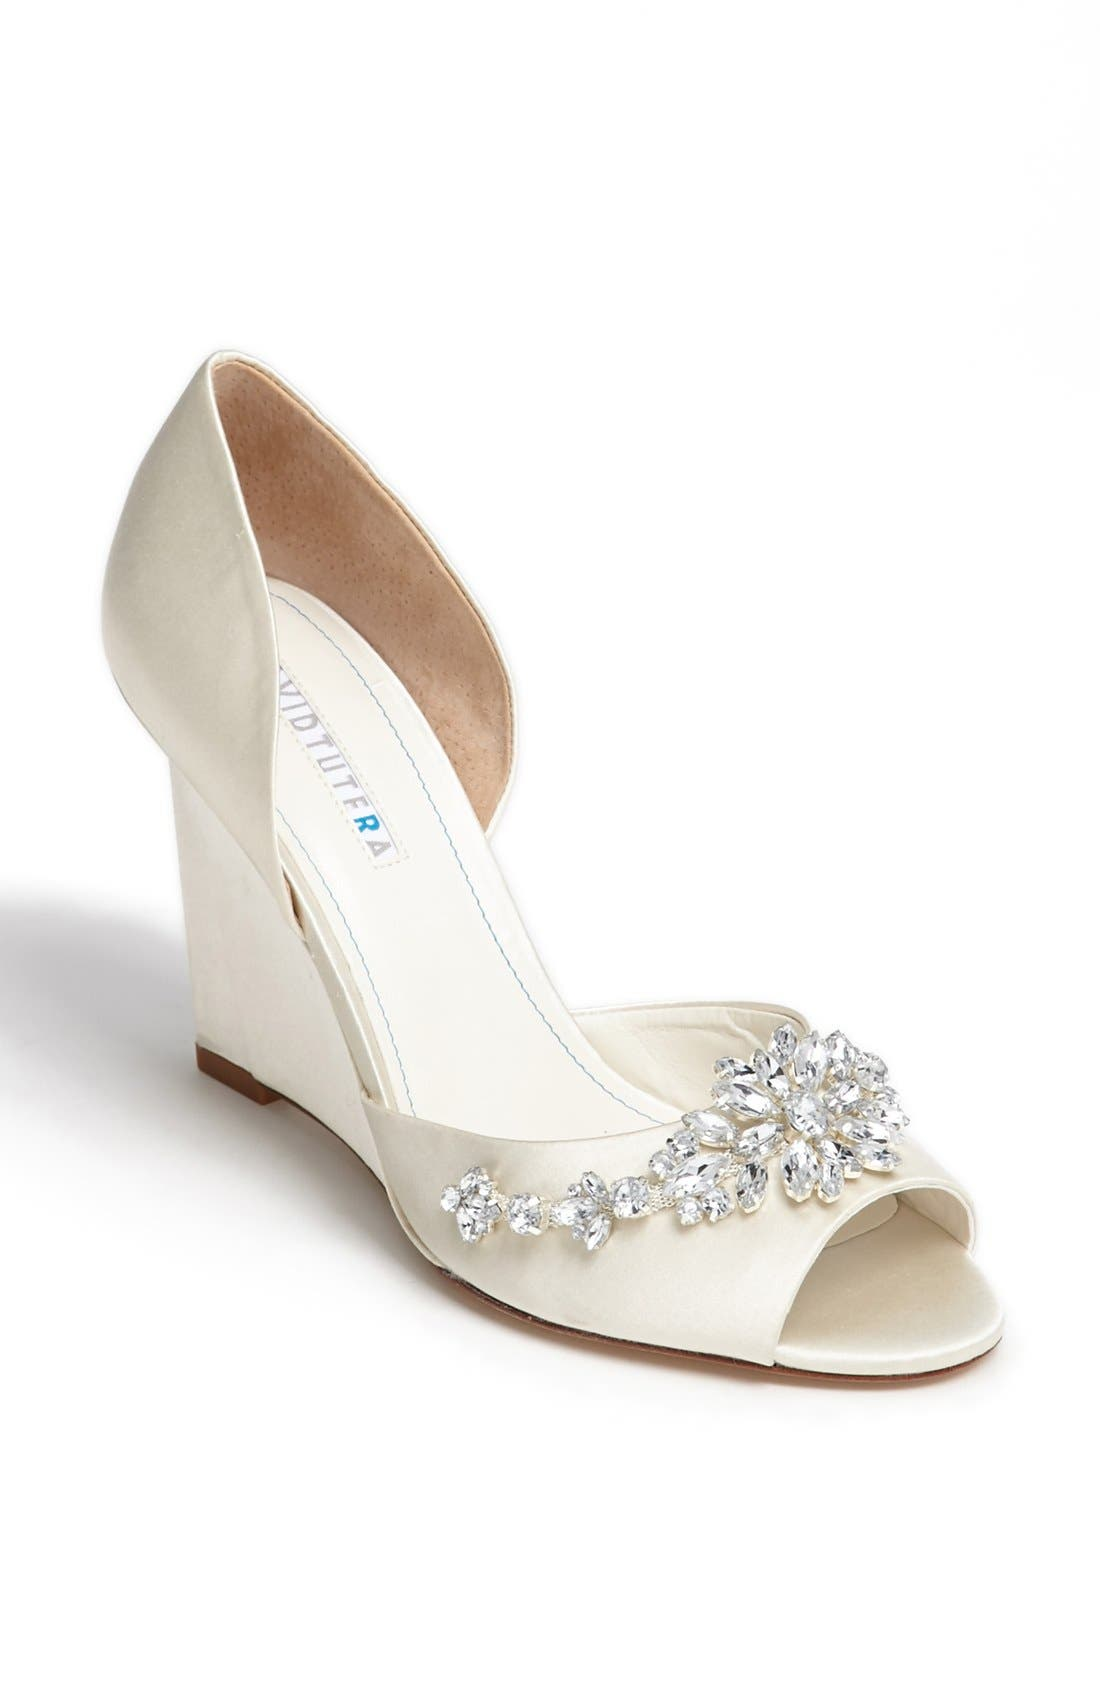 Alternate Image 1 Selected - David Tutera 'Winter' Wedge Sandal (Online Only)